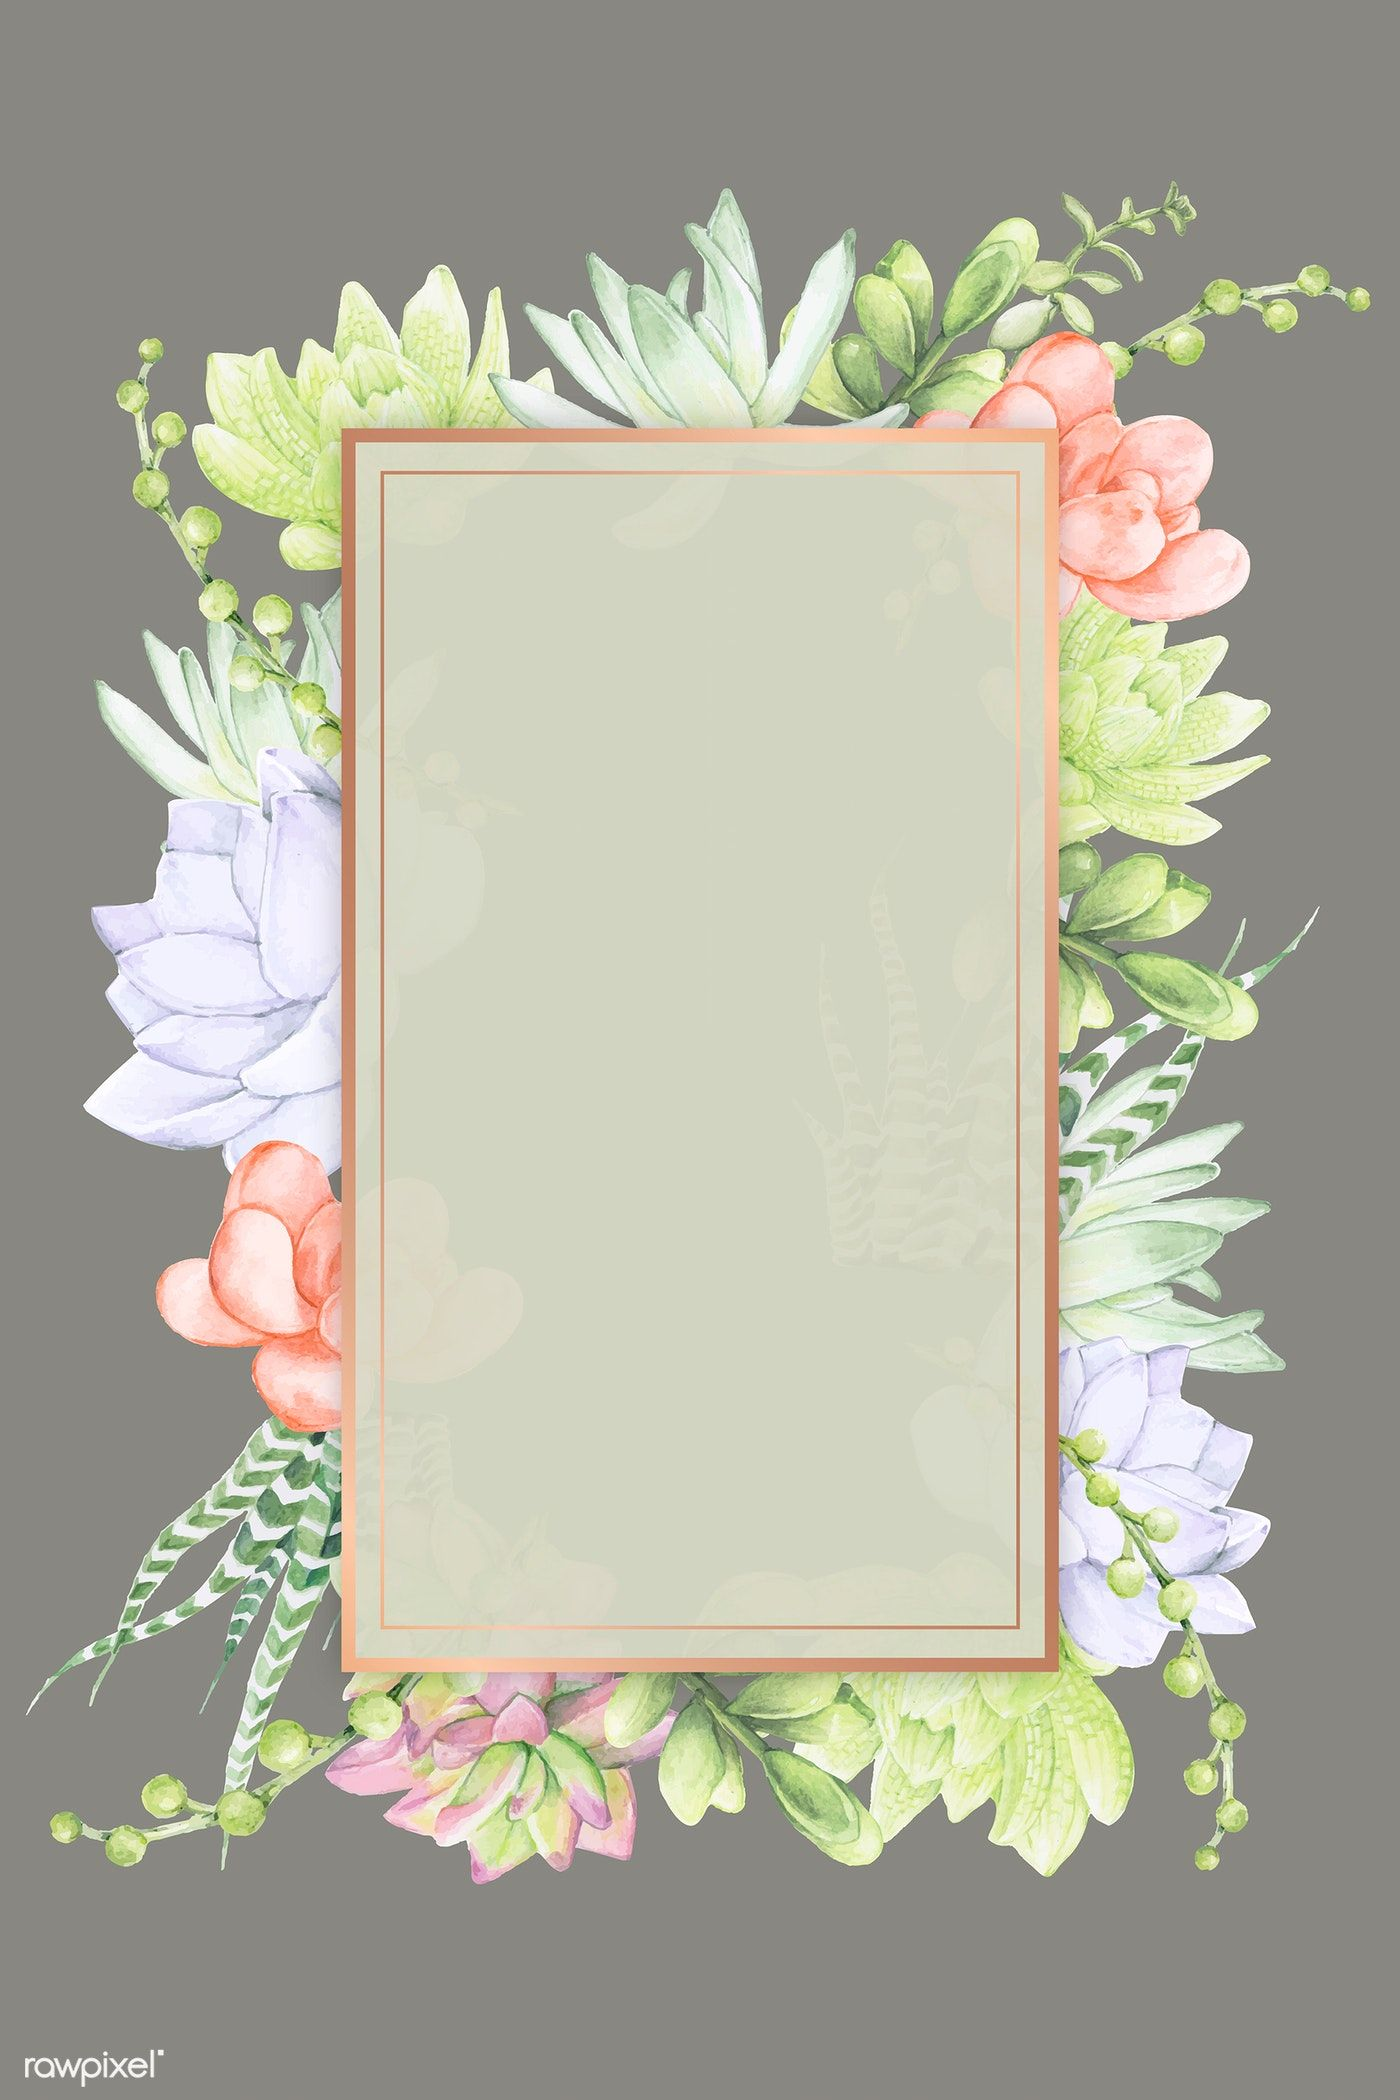 Download Premium Vector Of Hand Drawn Succulent Recrangle Frame Template Frame Template How To Draw Hands Flower Background Wallpaper